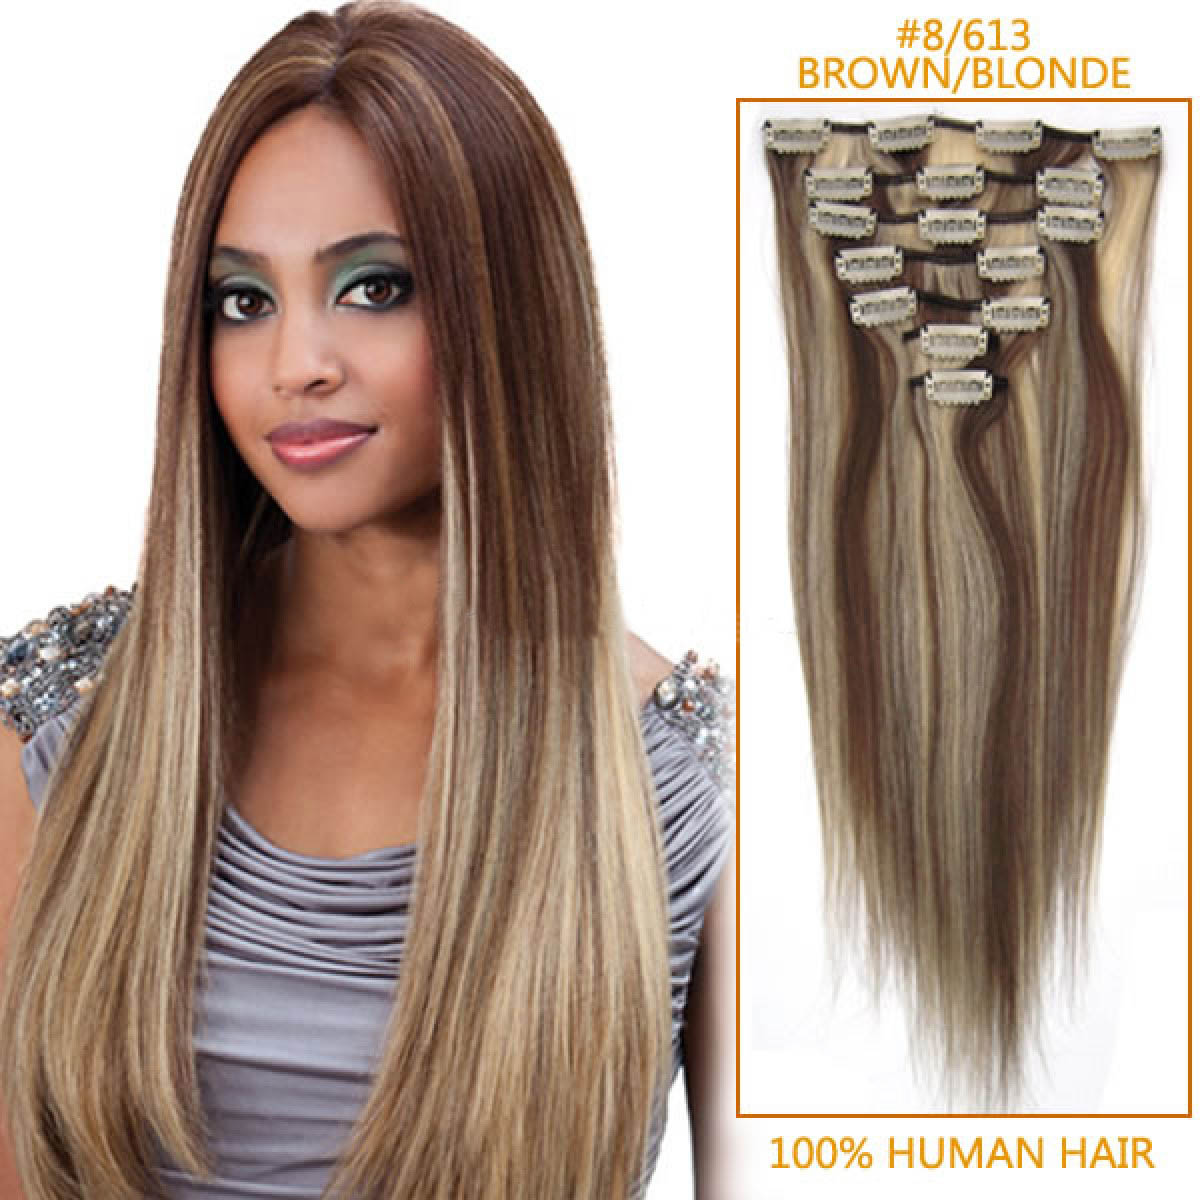 20 Inch #8/613 Brown/Blonde Clip In Remy Human Hair Extensions 9pcs no ...